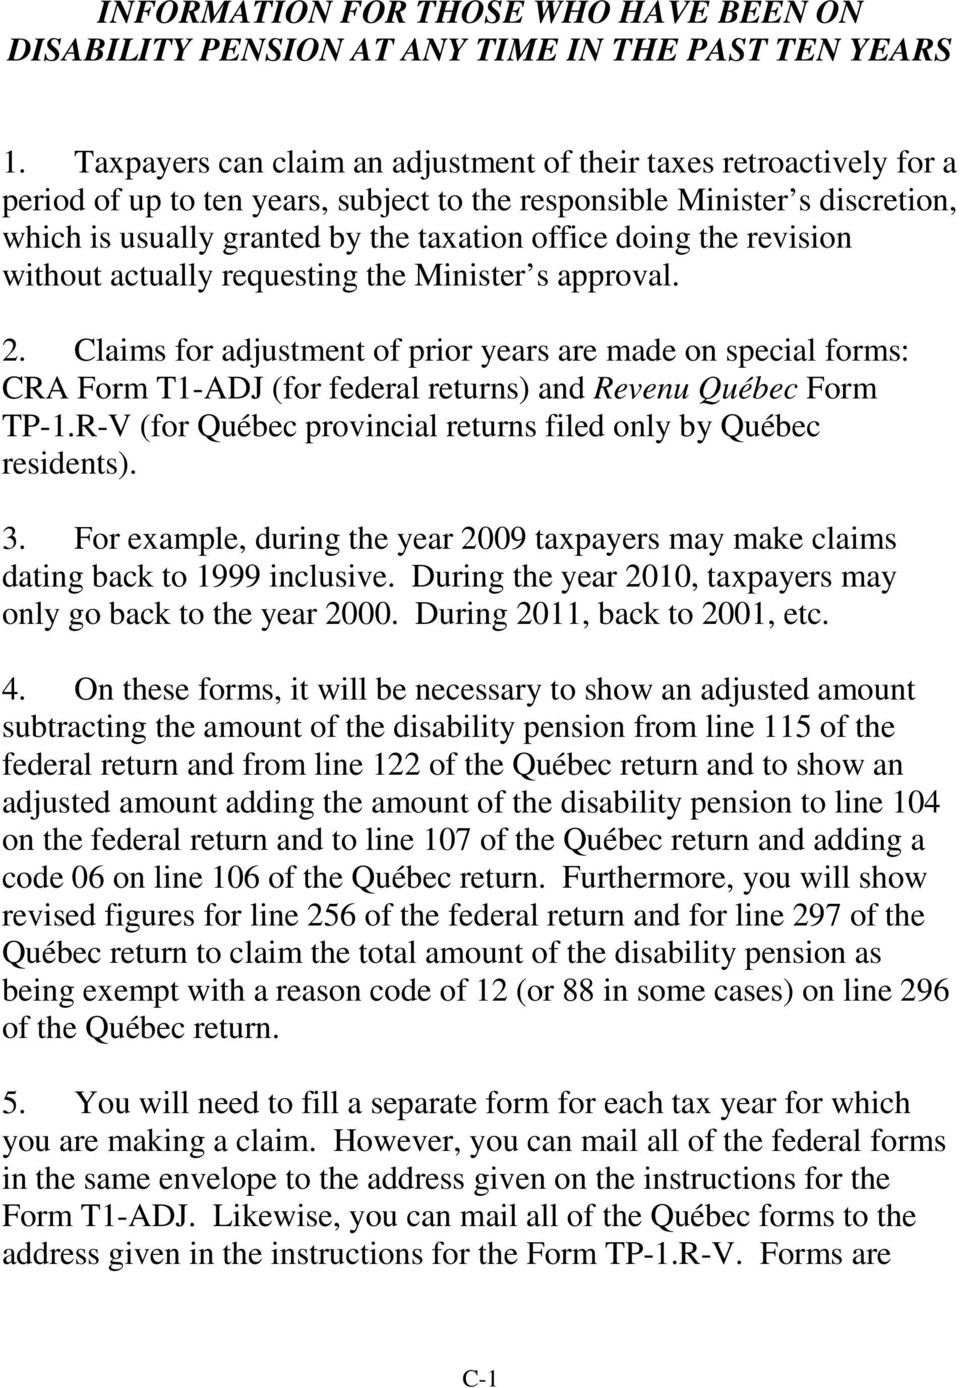 the revision without actually requesting the Minister s approval. 2. Claims for adjustment of prior years are made on special forms: CRA Form T1-ADJ (for federal returns) and Revenu Québec Form TP-1.